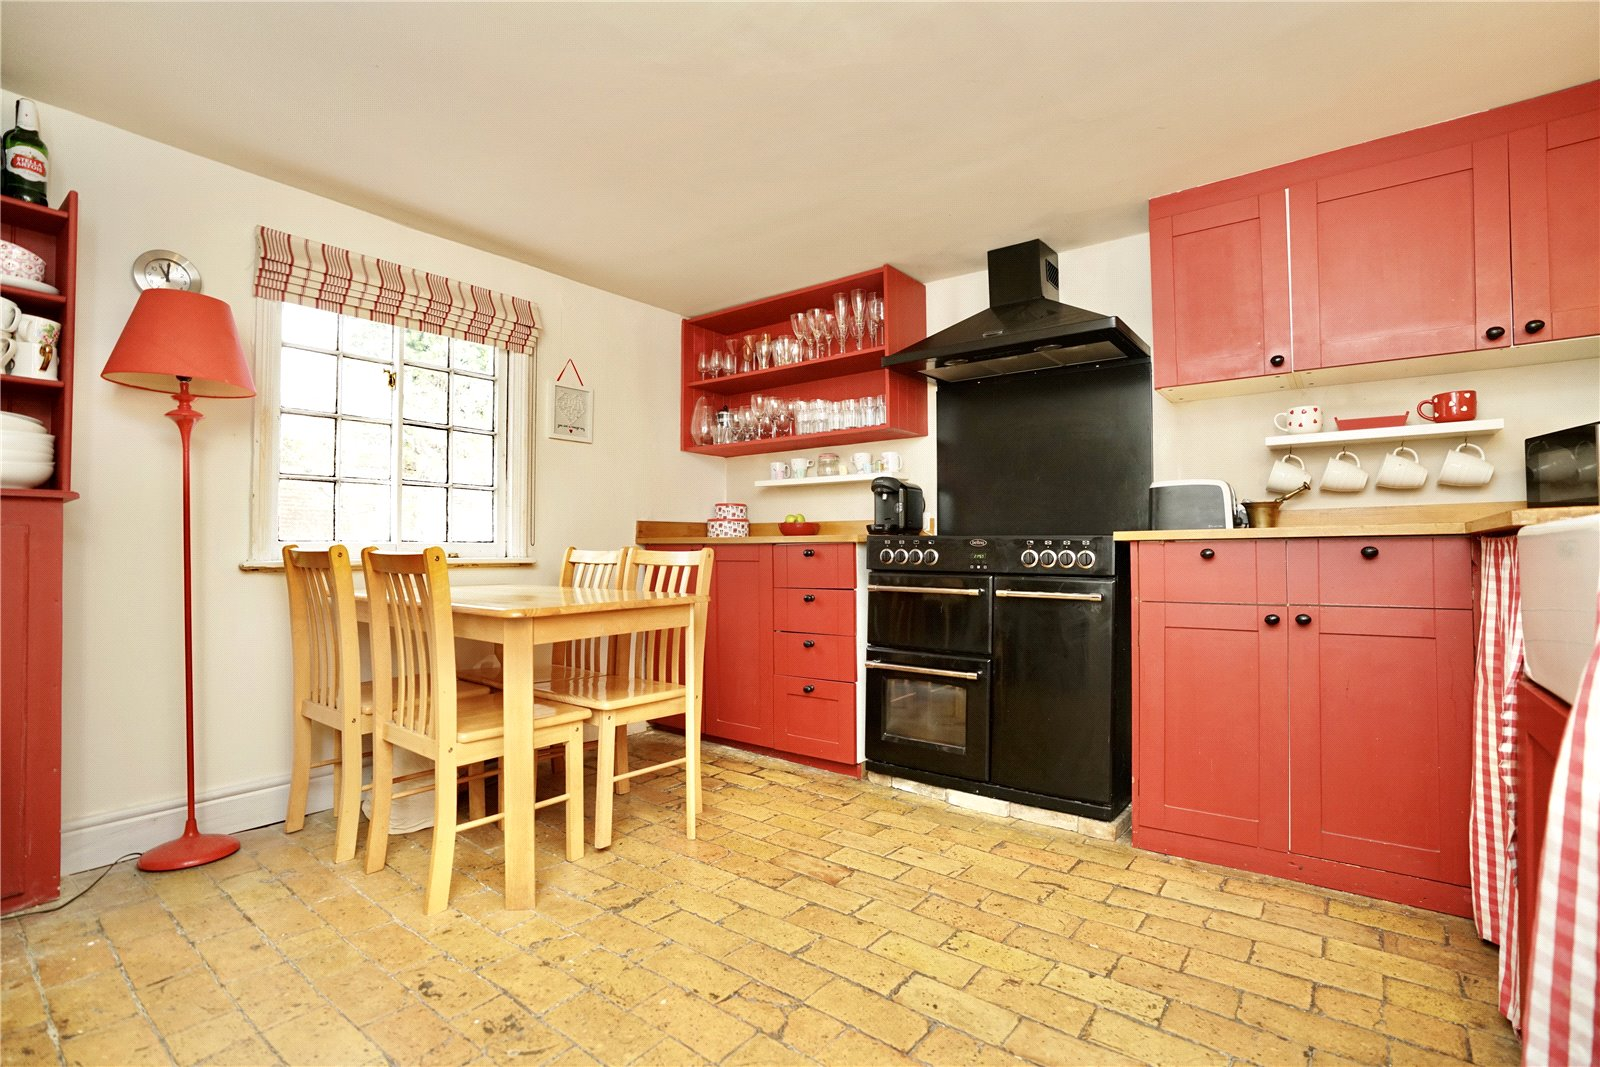 4 bed for sale in The Town, Great Staughton 4